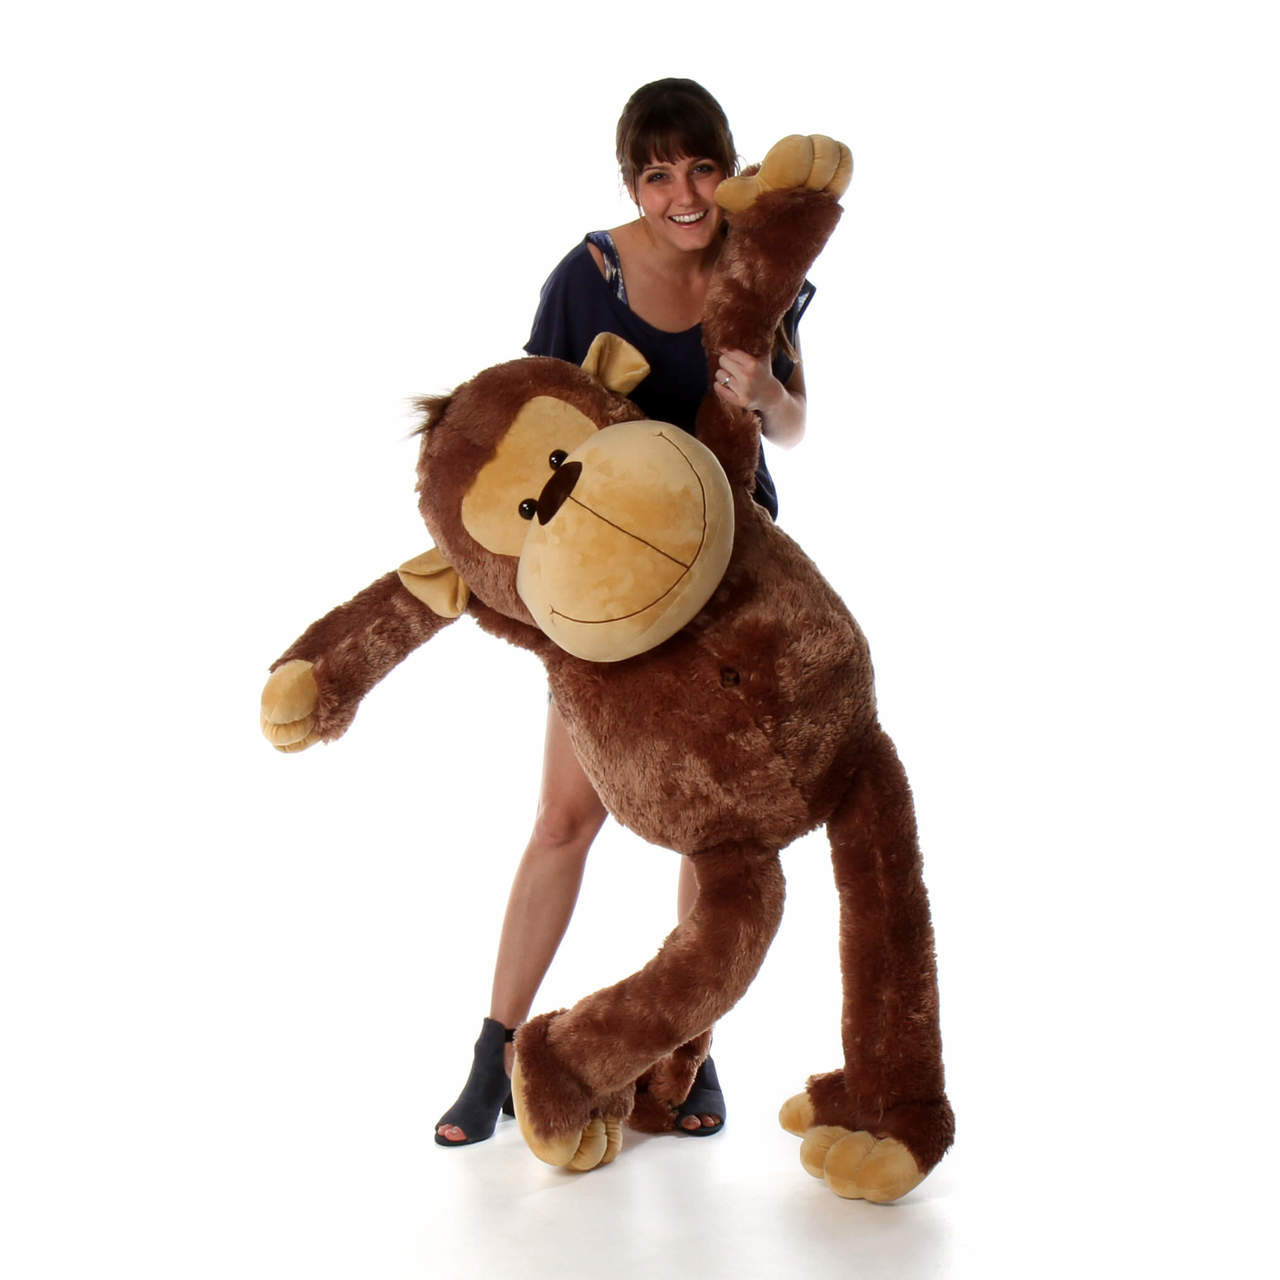 58in Life Size Giant Stuffed Friendly Monkey gift from Giant Teddy brand